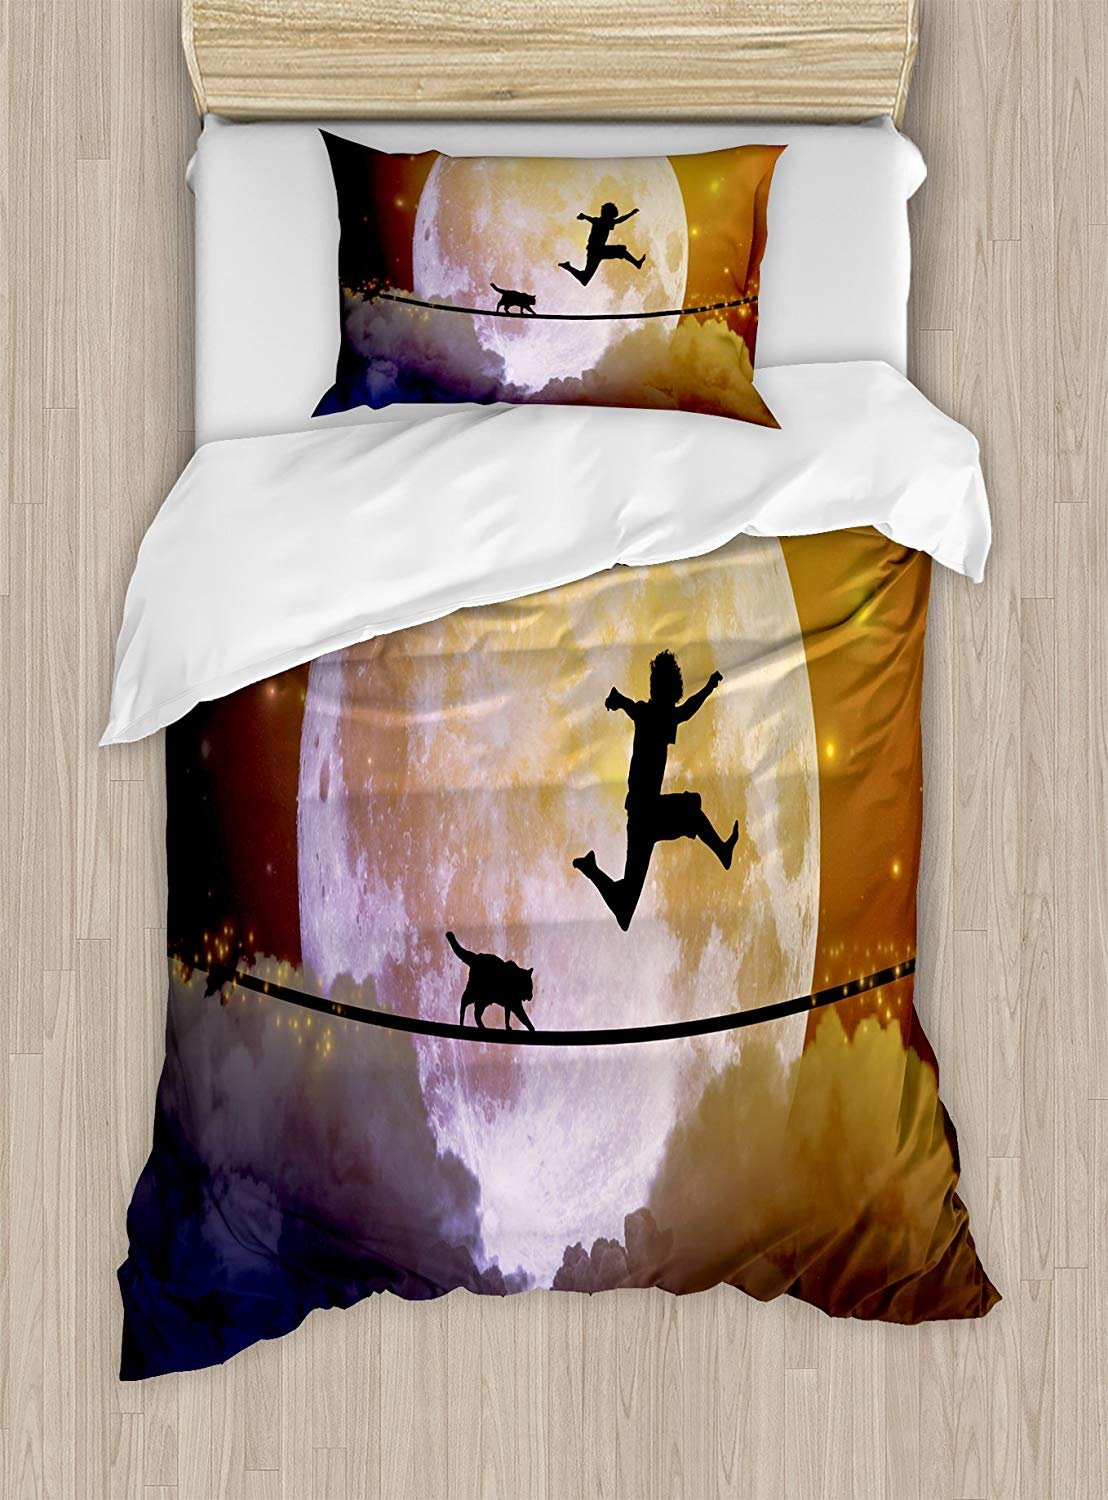 Adventure Duvet Cover Set,Boy and a Cat Walking on a Rope in Front of the Moon Fantastic Imagery Print,Cosy House Collection 4 Piece Bedding Sets